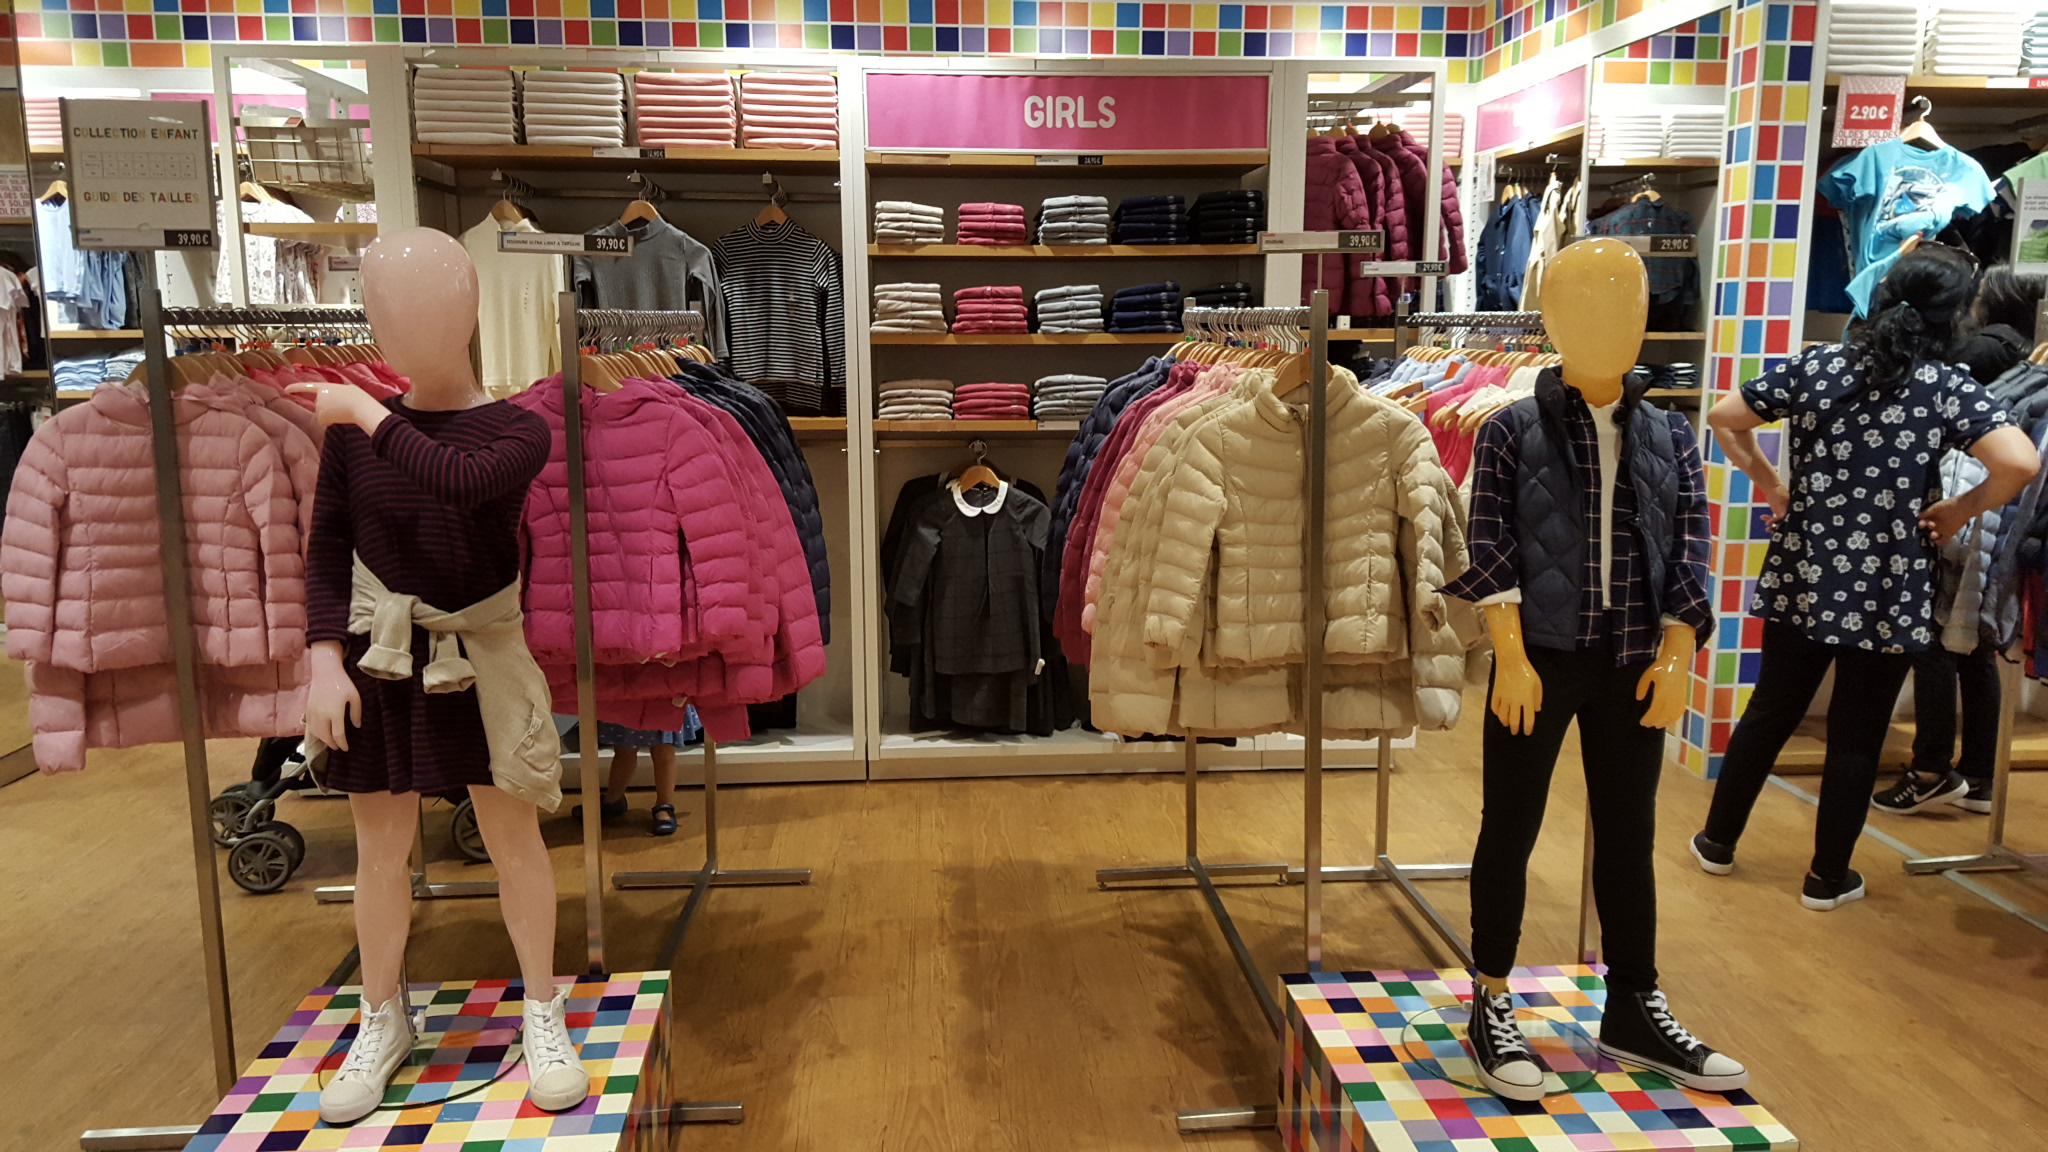 Zone kids merchandising